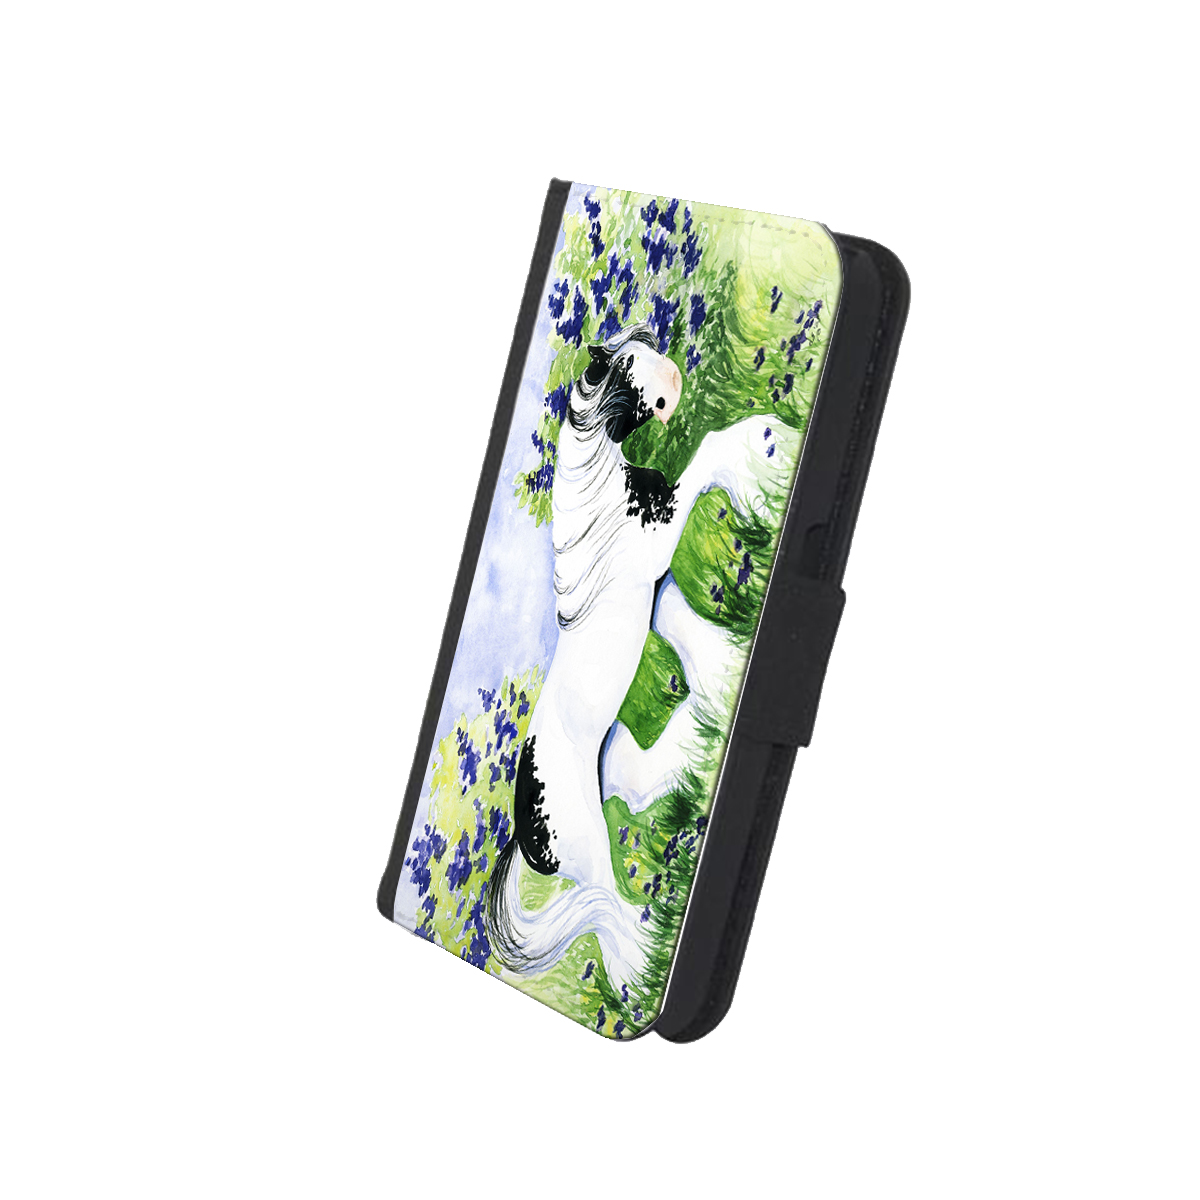 KuzmarK iPhone 7 Wallet Case - Piebald Gypsy Cob with Lilacs and Violets Horse Art by Denise Every™